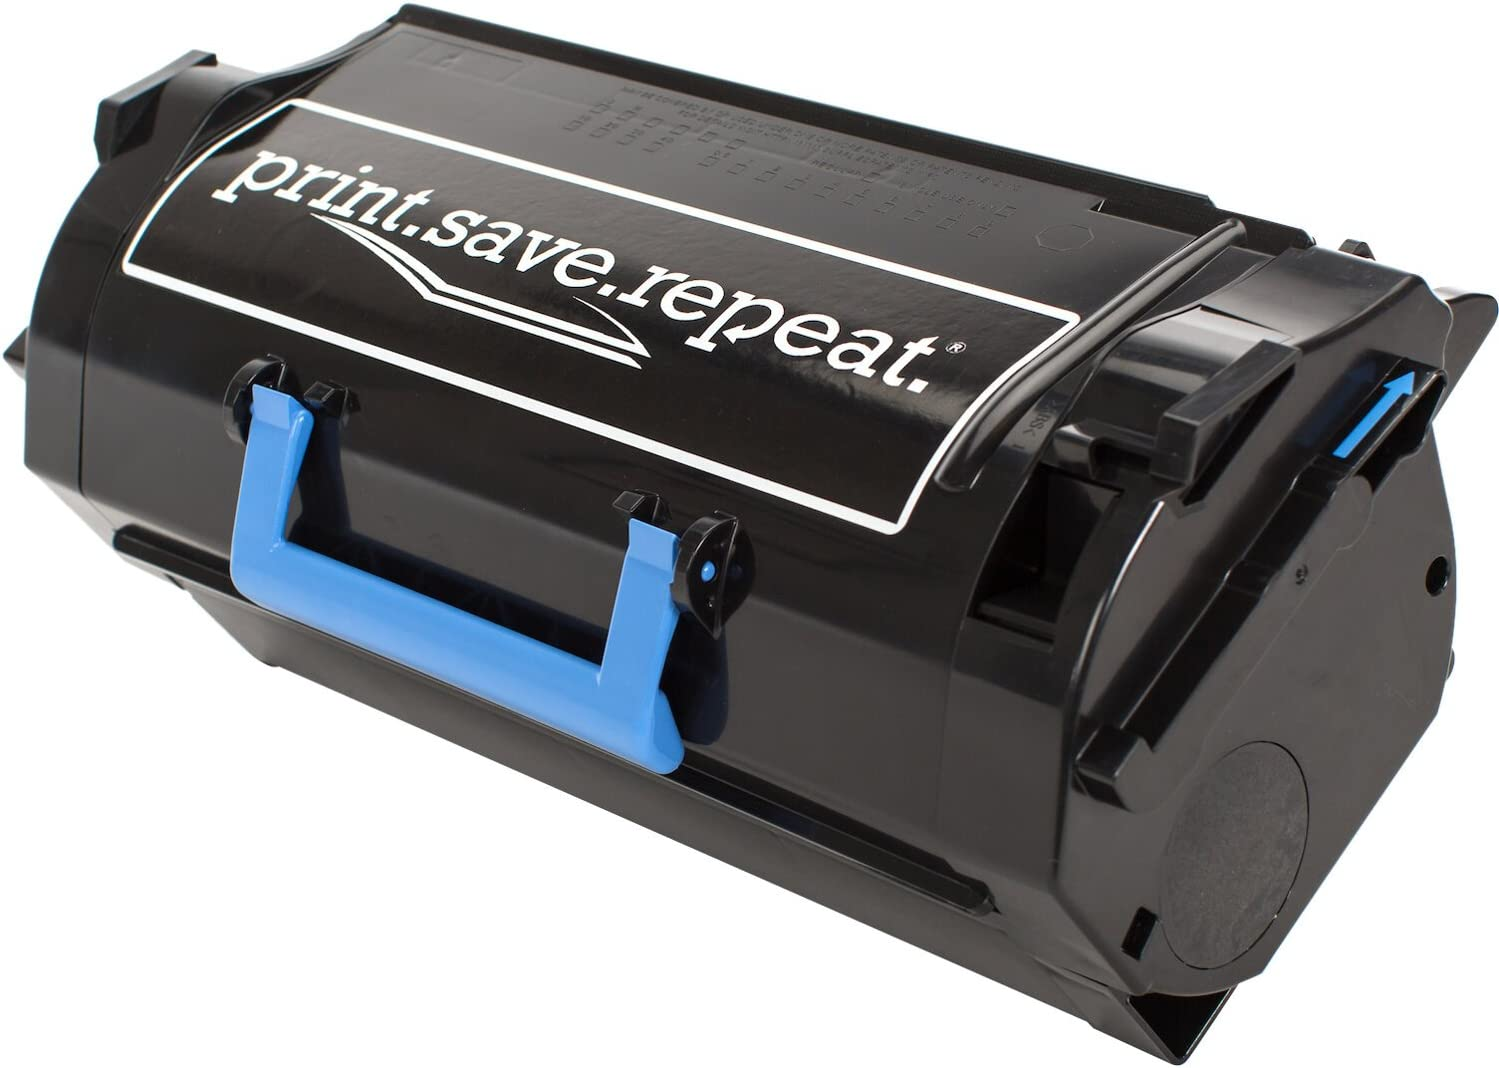 Dell FGVX0 Extra High Yield Remanufactured Toner Cartridge for B5465 45,000 Pages Print.Save.Repeat